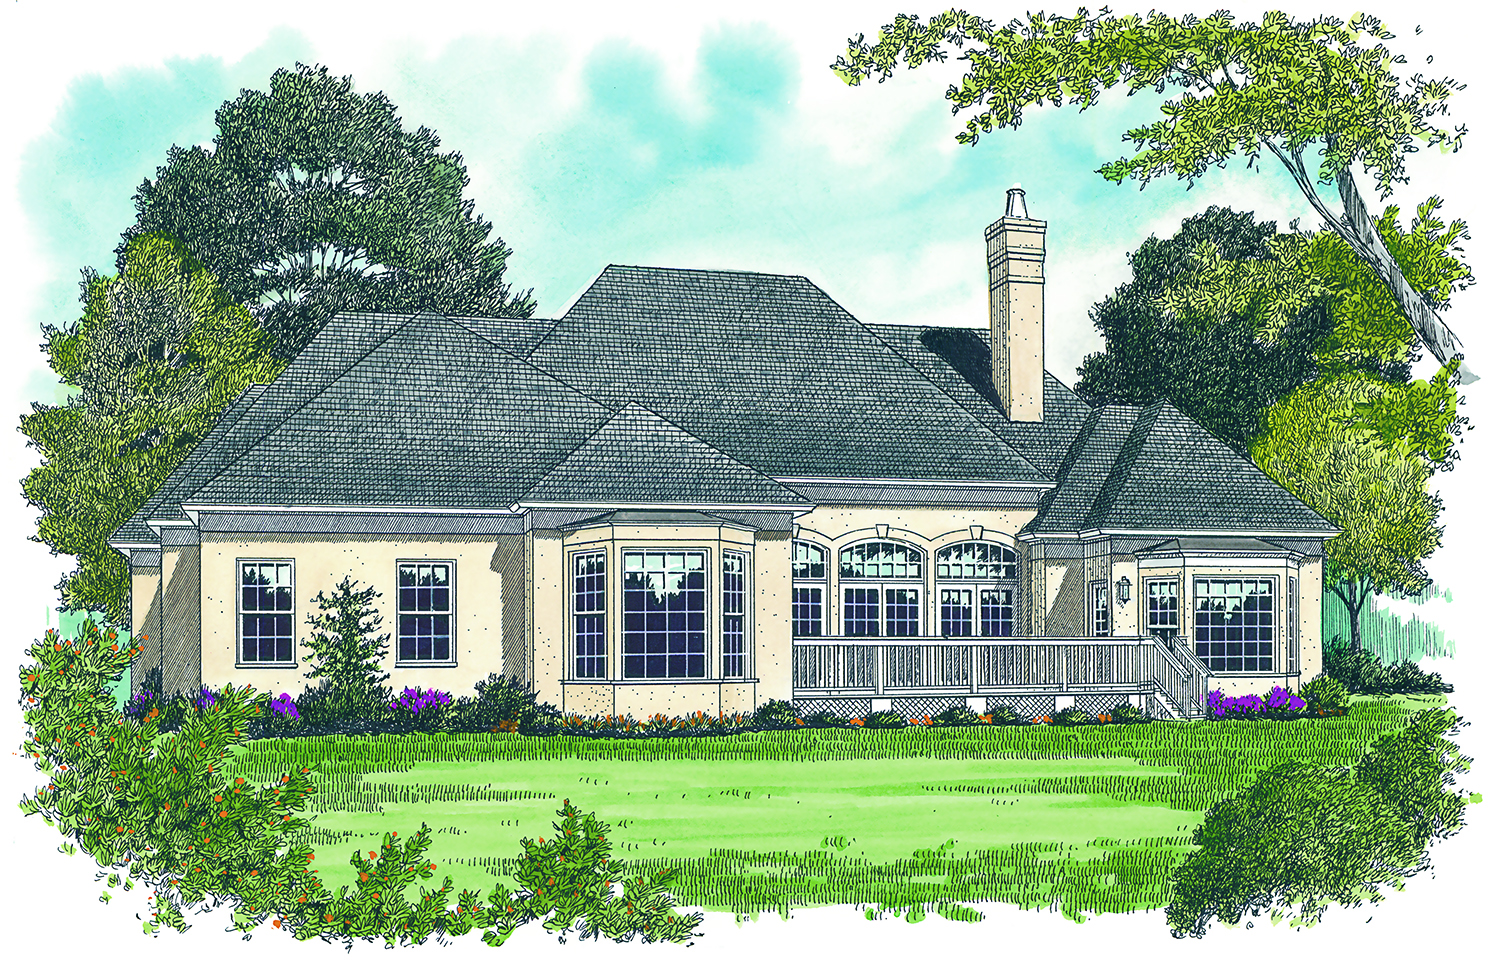 2500 sq ft french manor house plan 180 1010 3 bedrm home